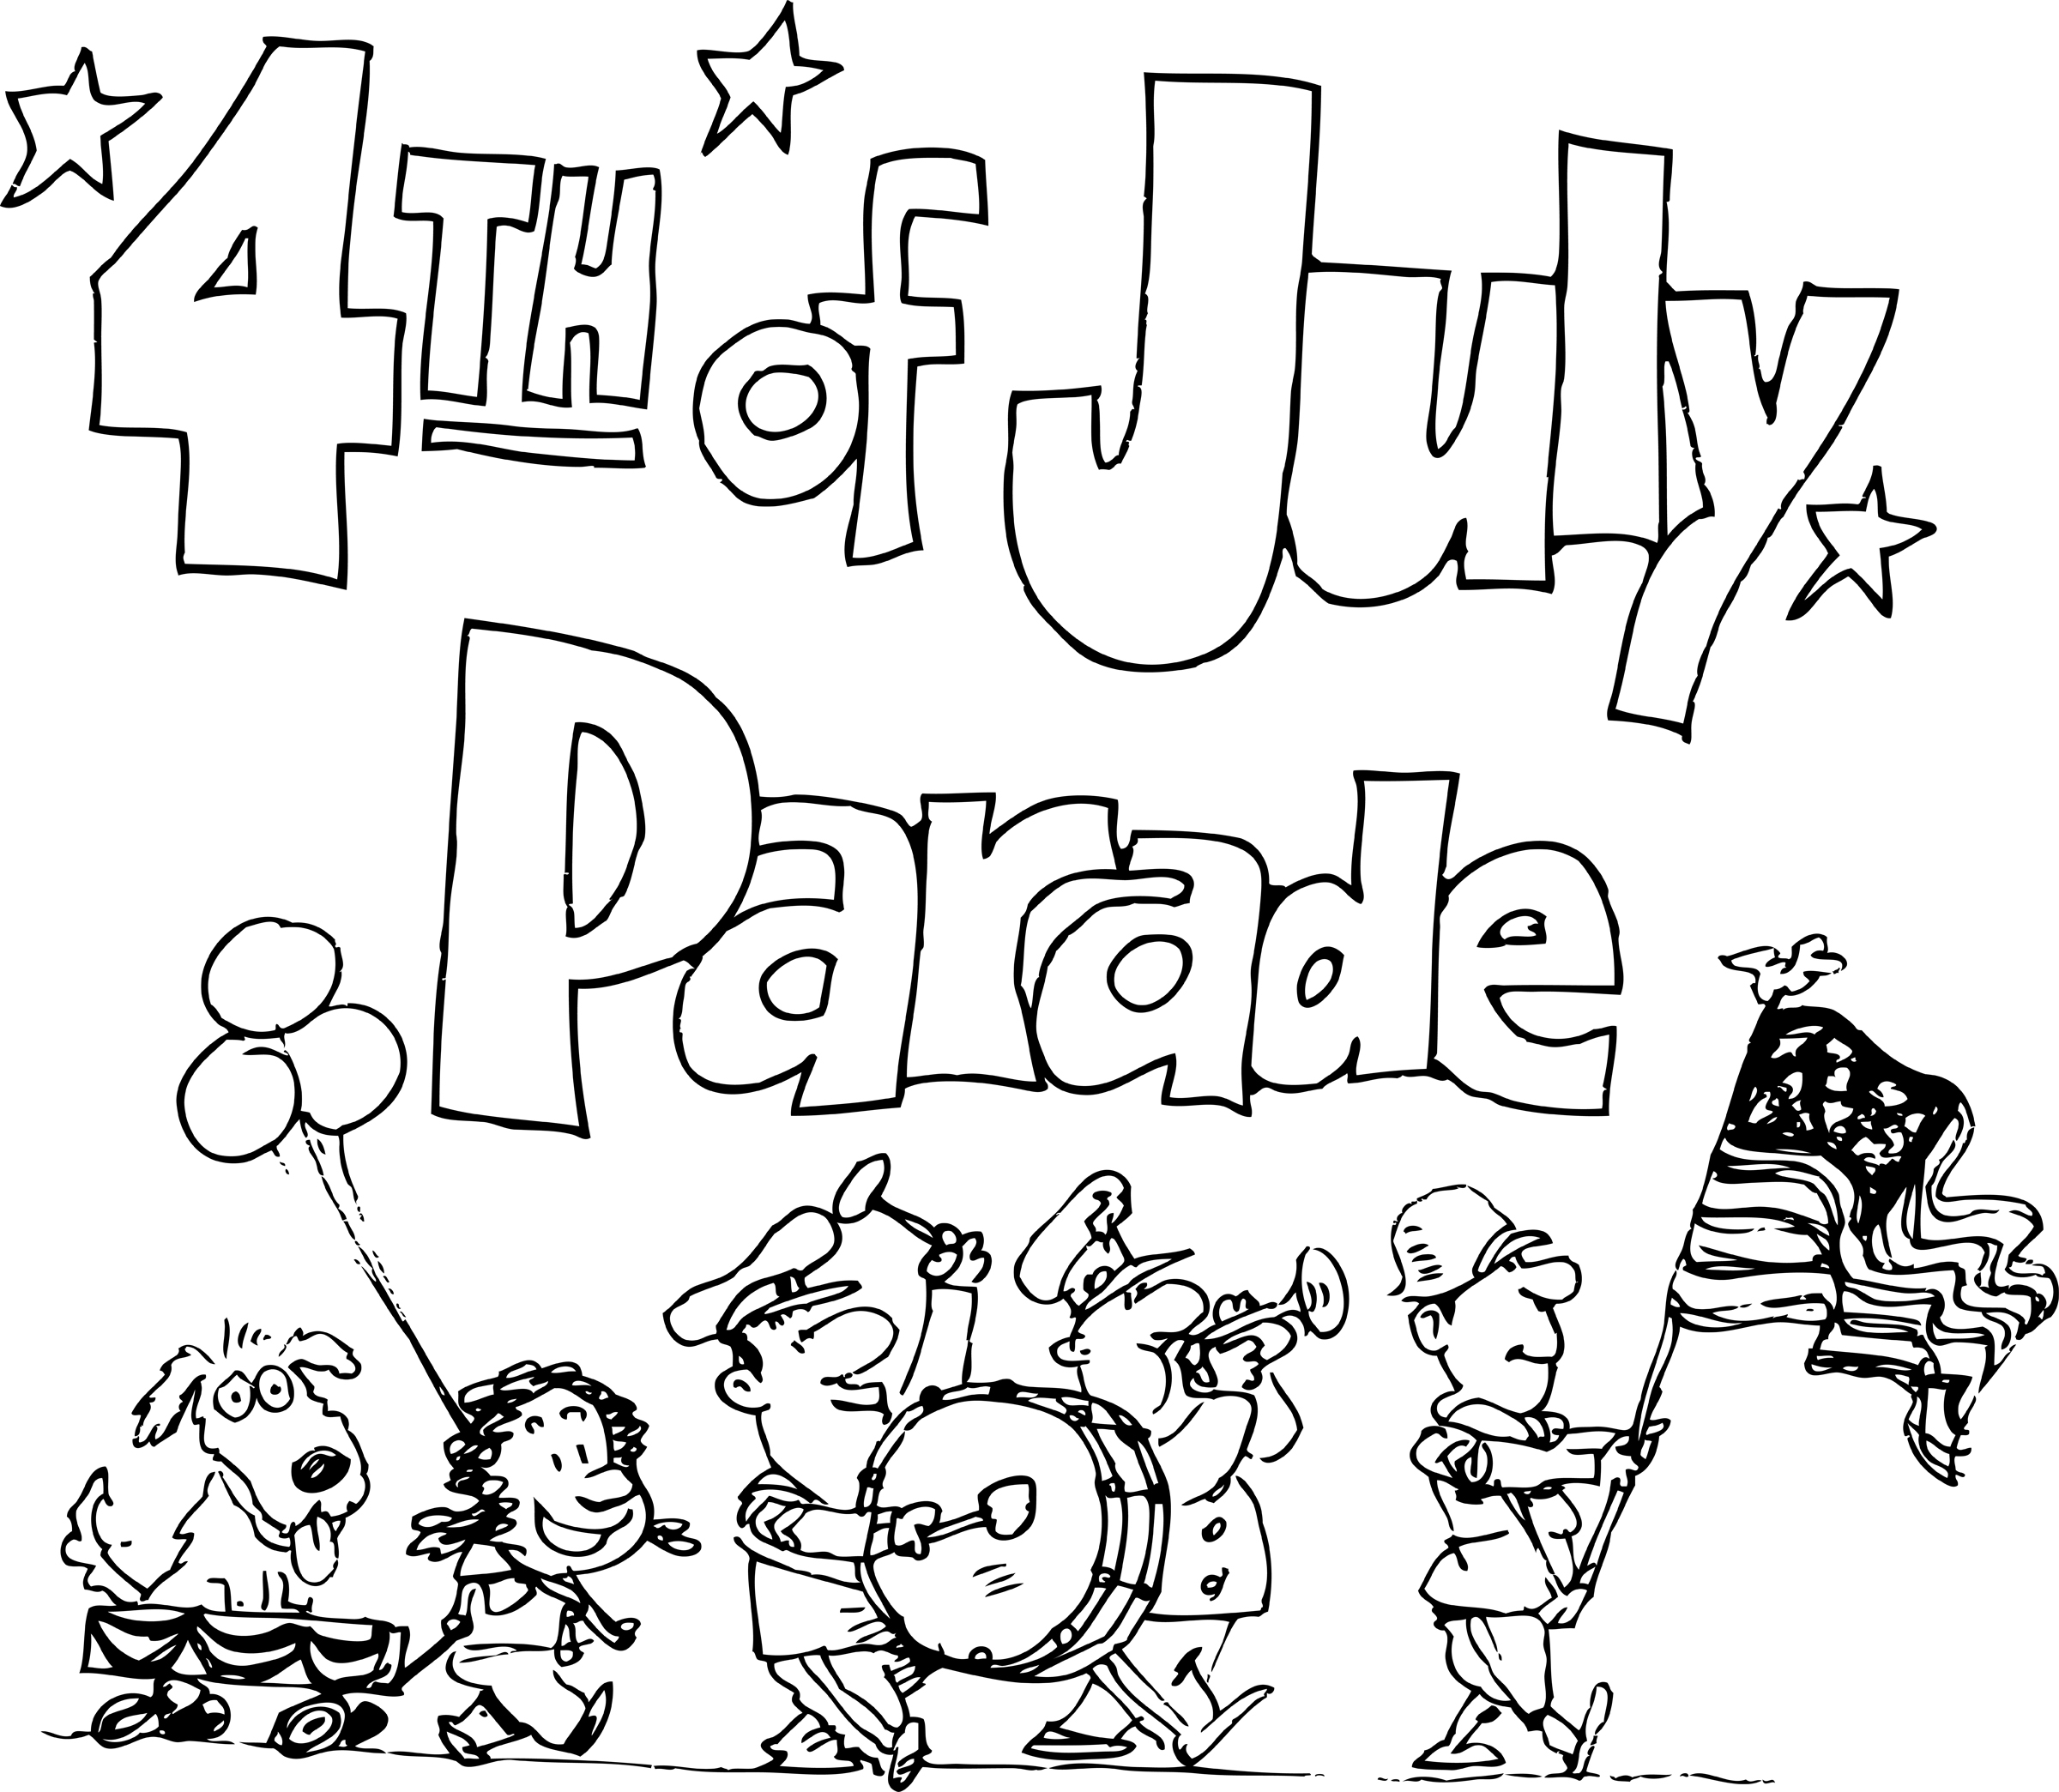 4th of july parade clipart svg black and white stock 4th Of July Parade Clip Art | Clipart Panda - Free Clipart Images svg black and white stock